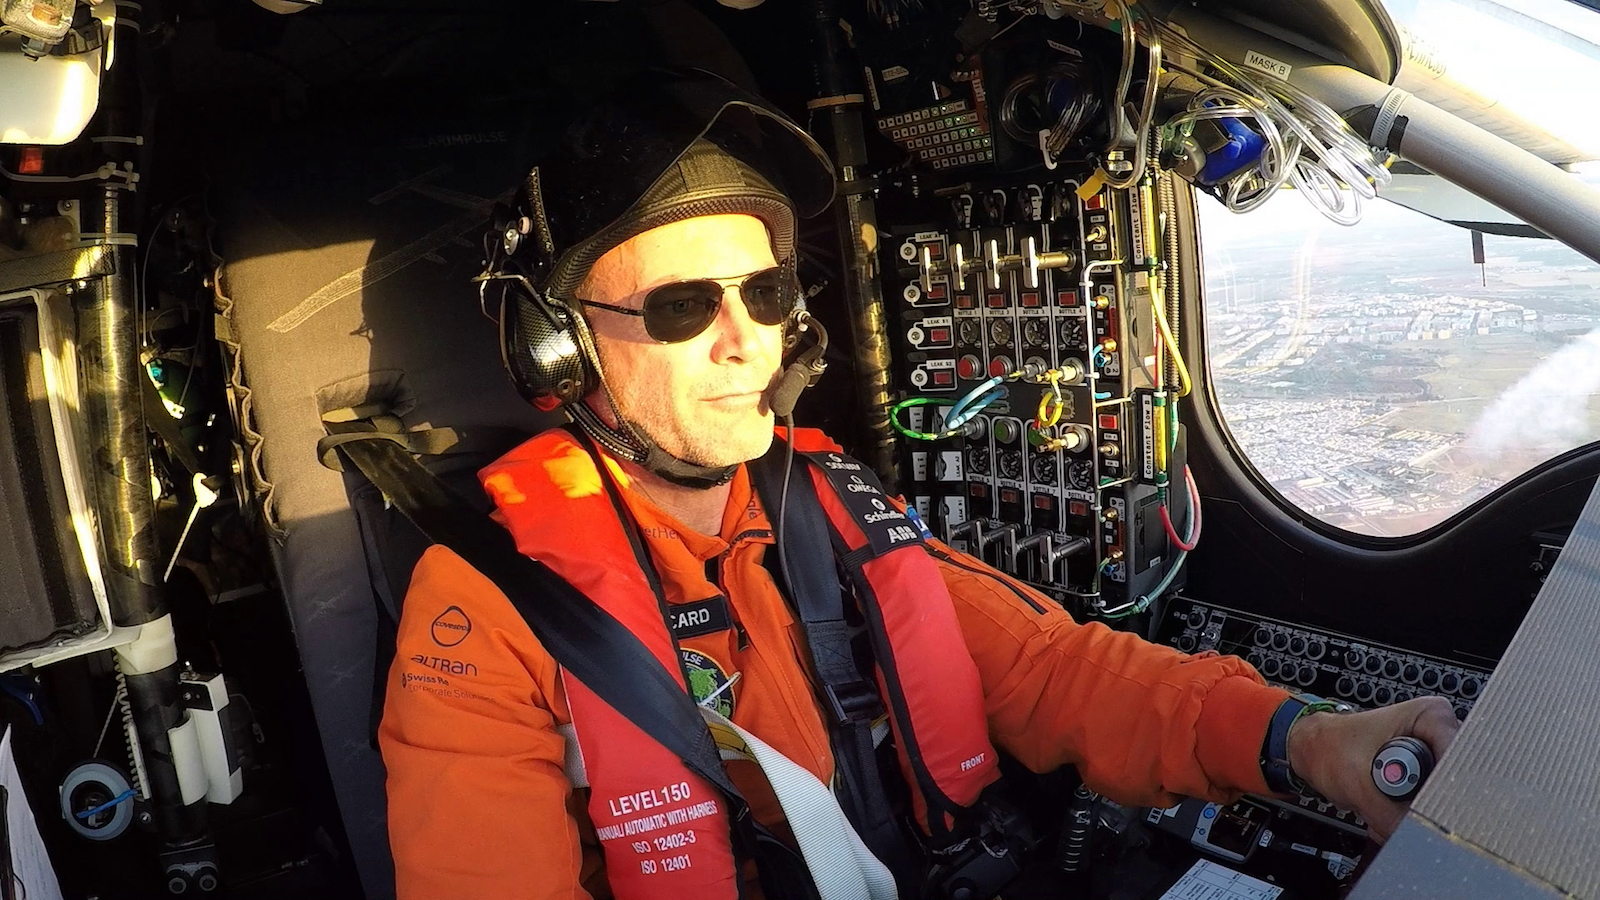 Bertrand_Piccard_in_the_cockpit_of_Solar_Impulse_2 kopie